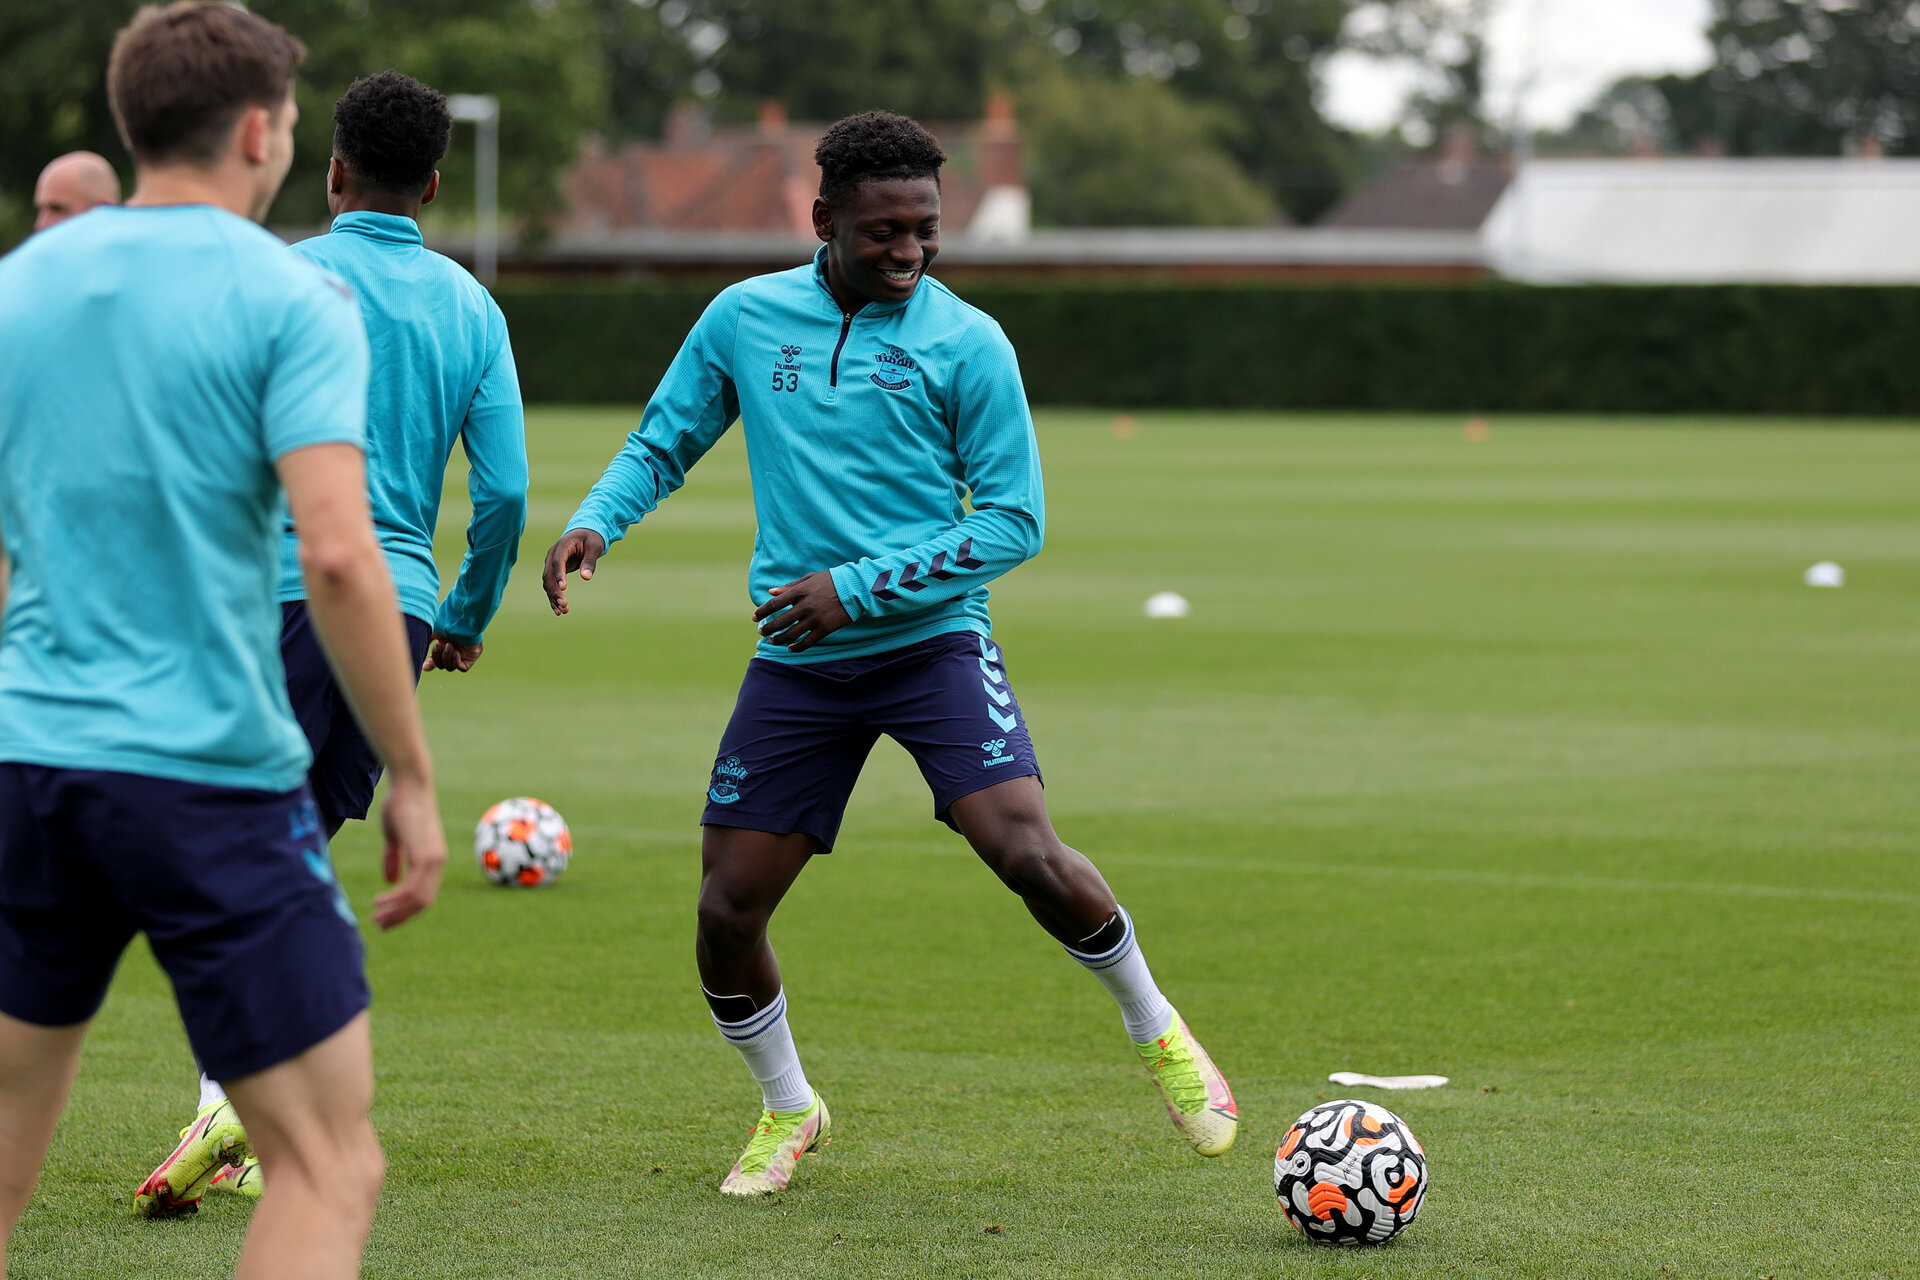 SOUTHAMPTON, ENGLAND - SEPTEMBER 01: Kazeem Olaigbe during Southampton training session at Staplewood Complex on September 01, 2021 in Southampton, England. (Photo by Isabelle Field/Southampton FC via Getty Images)